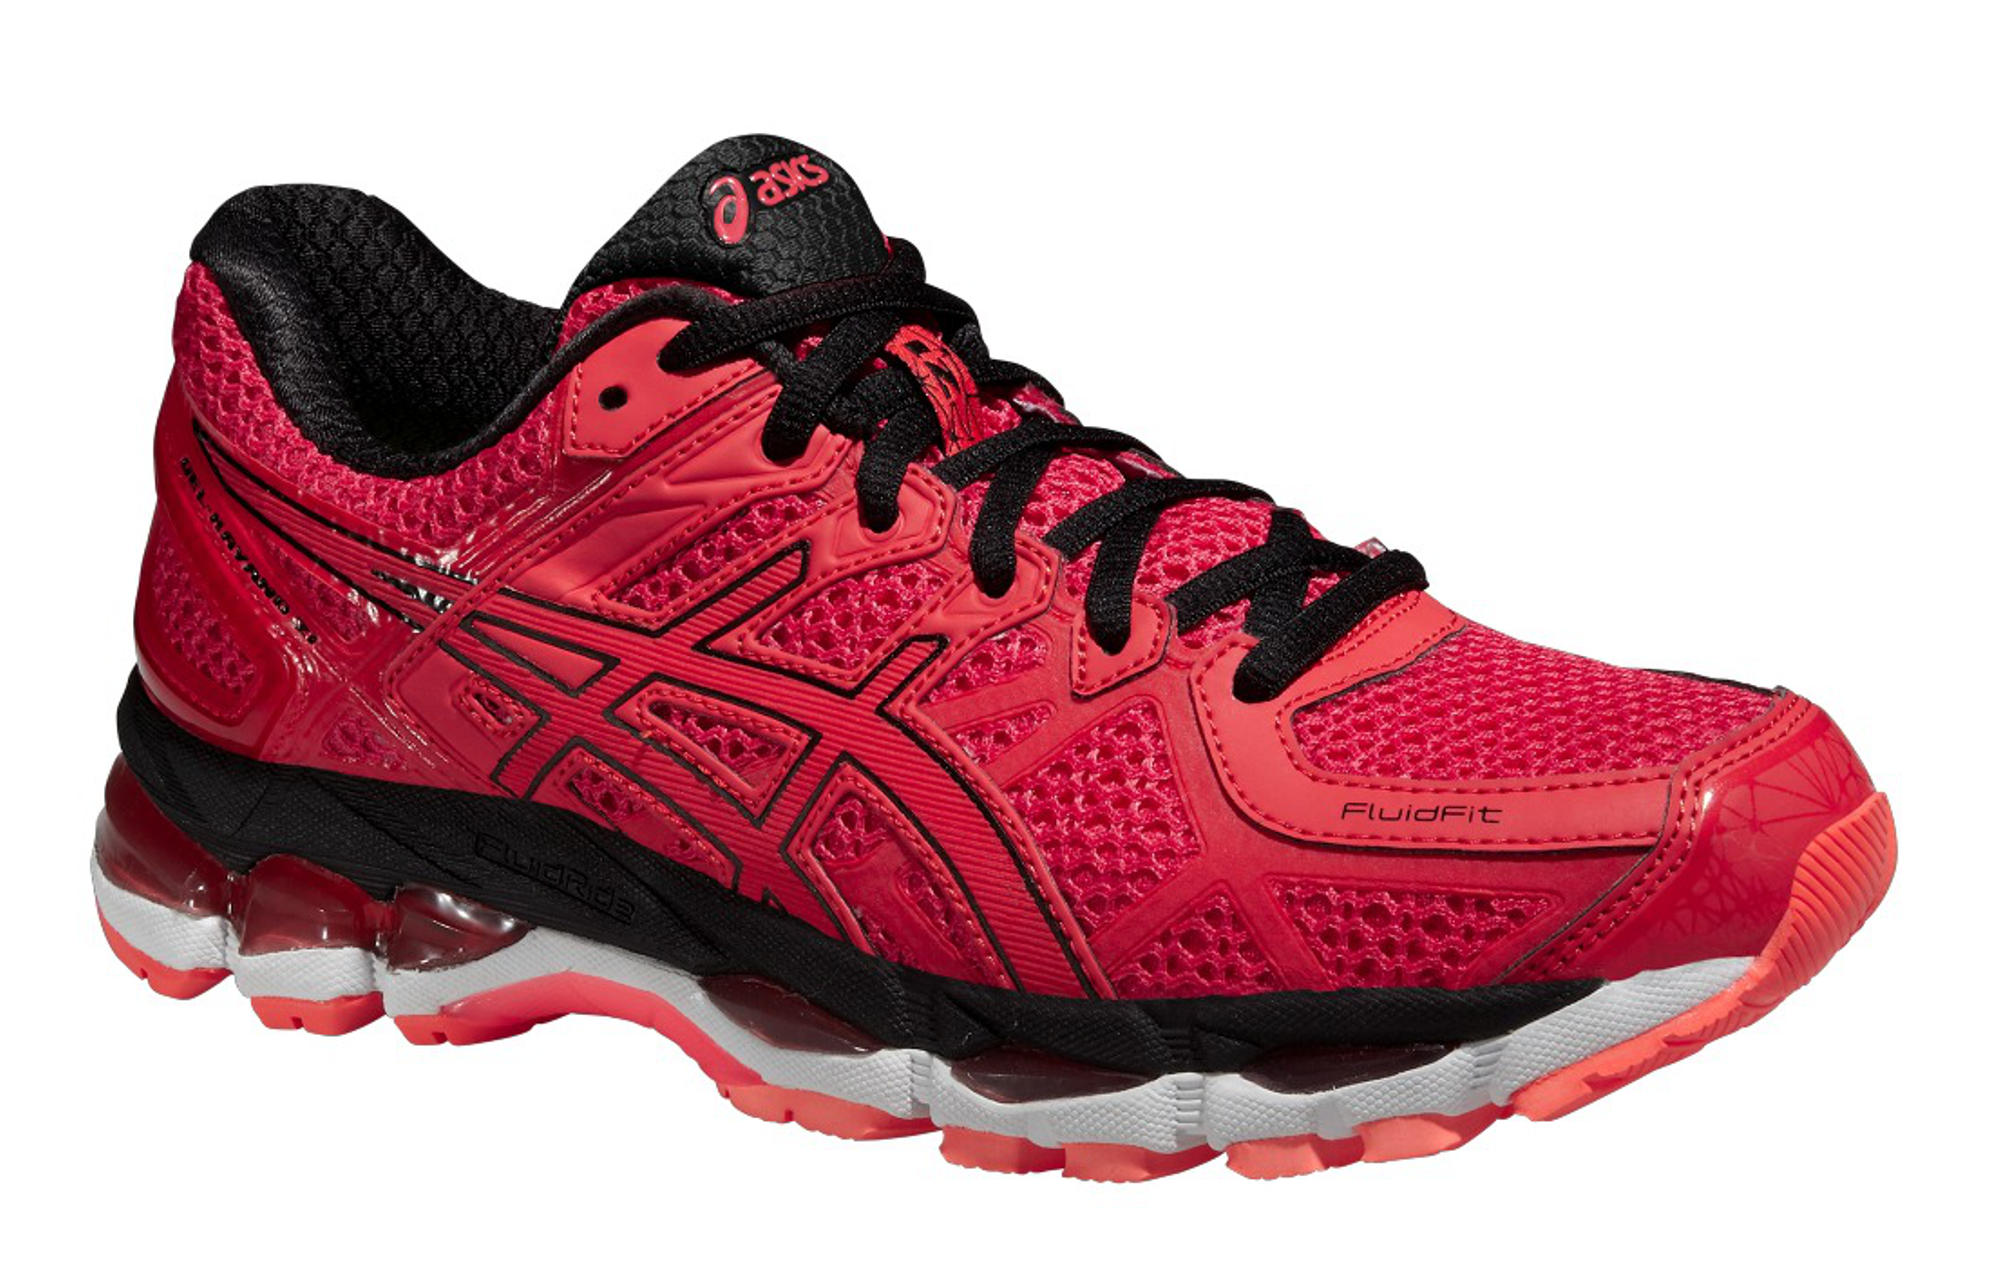 asics gel kayano 21 lite show womens running shoes. Black Bedroom Furniture Sets. Home Design Ideas